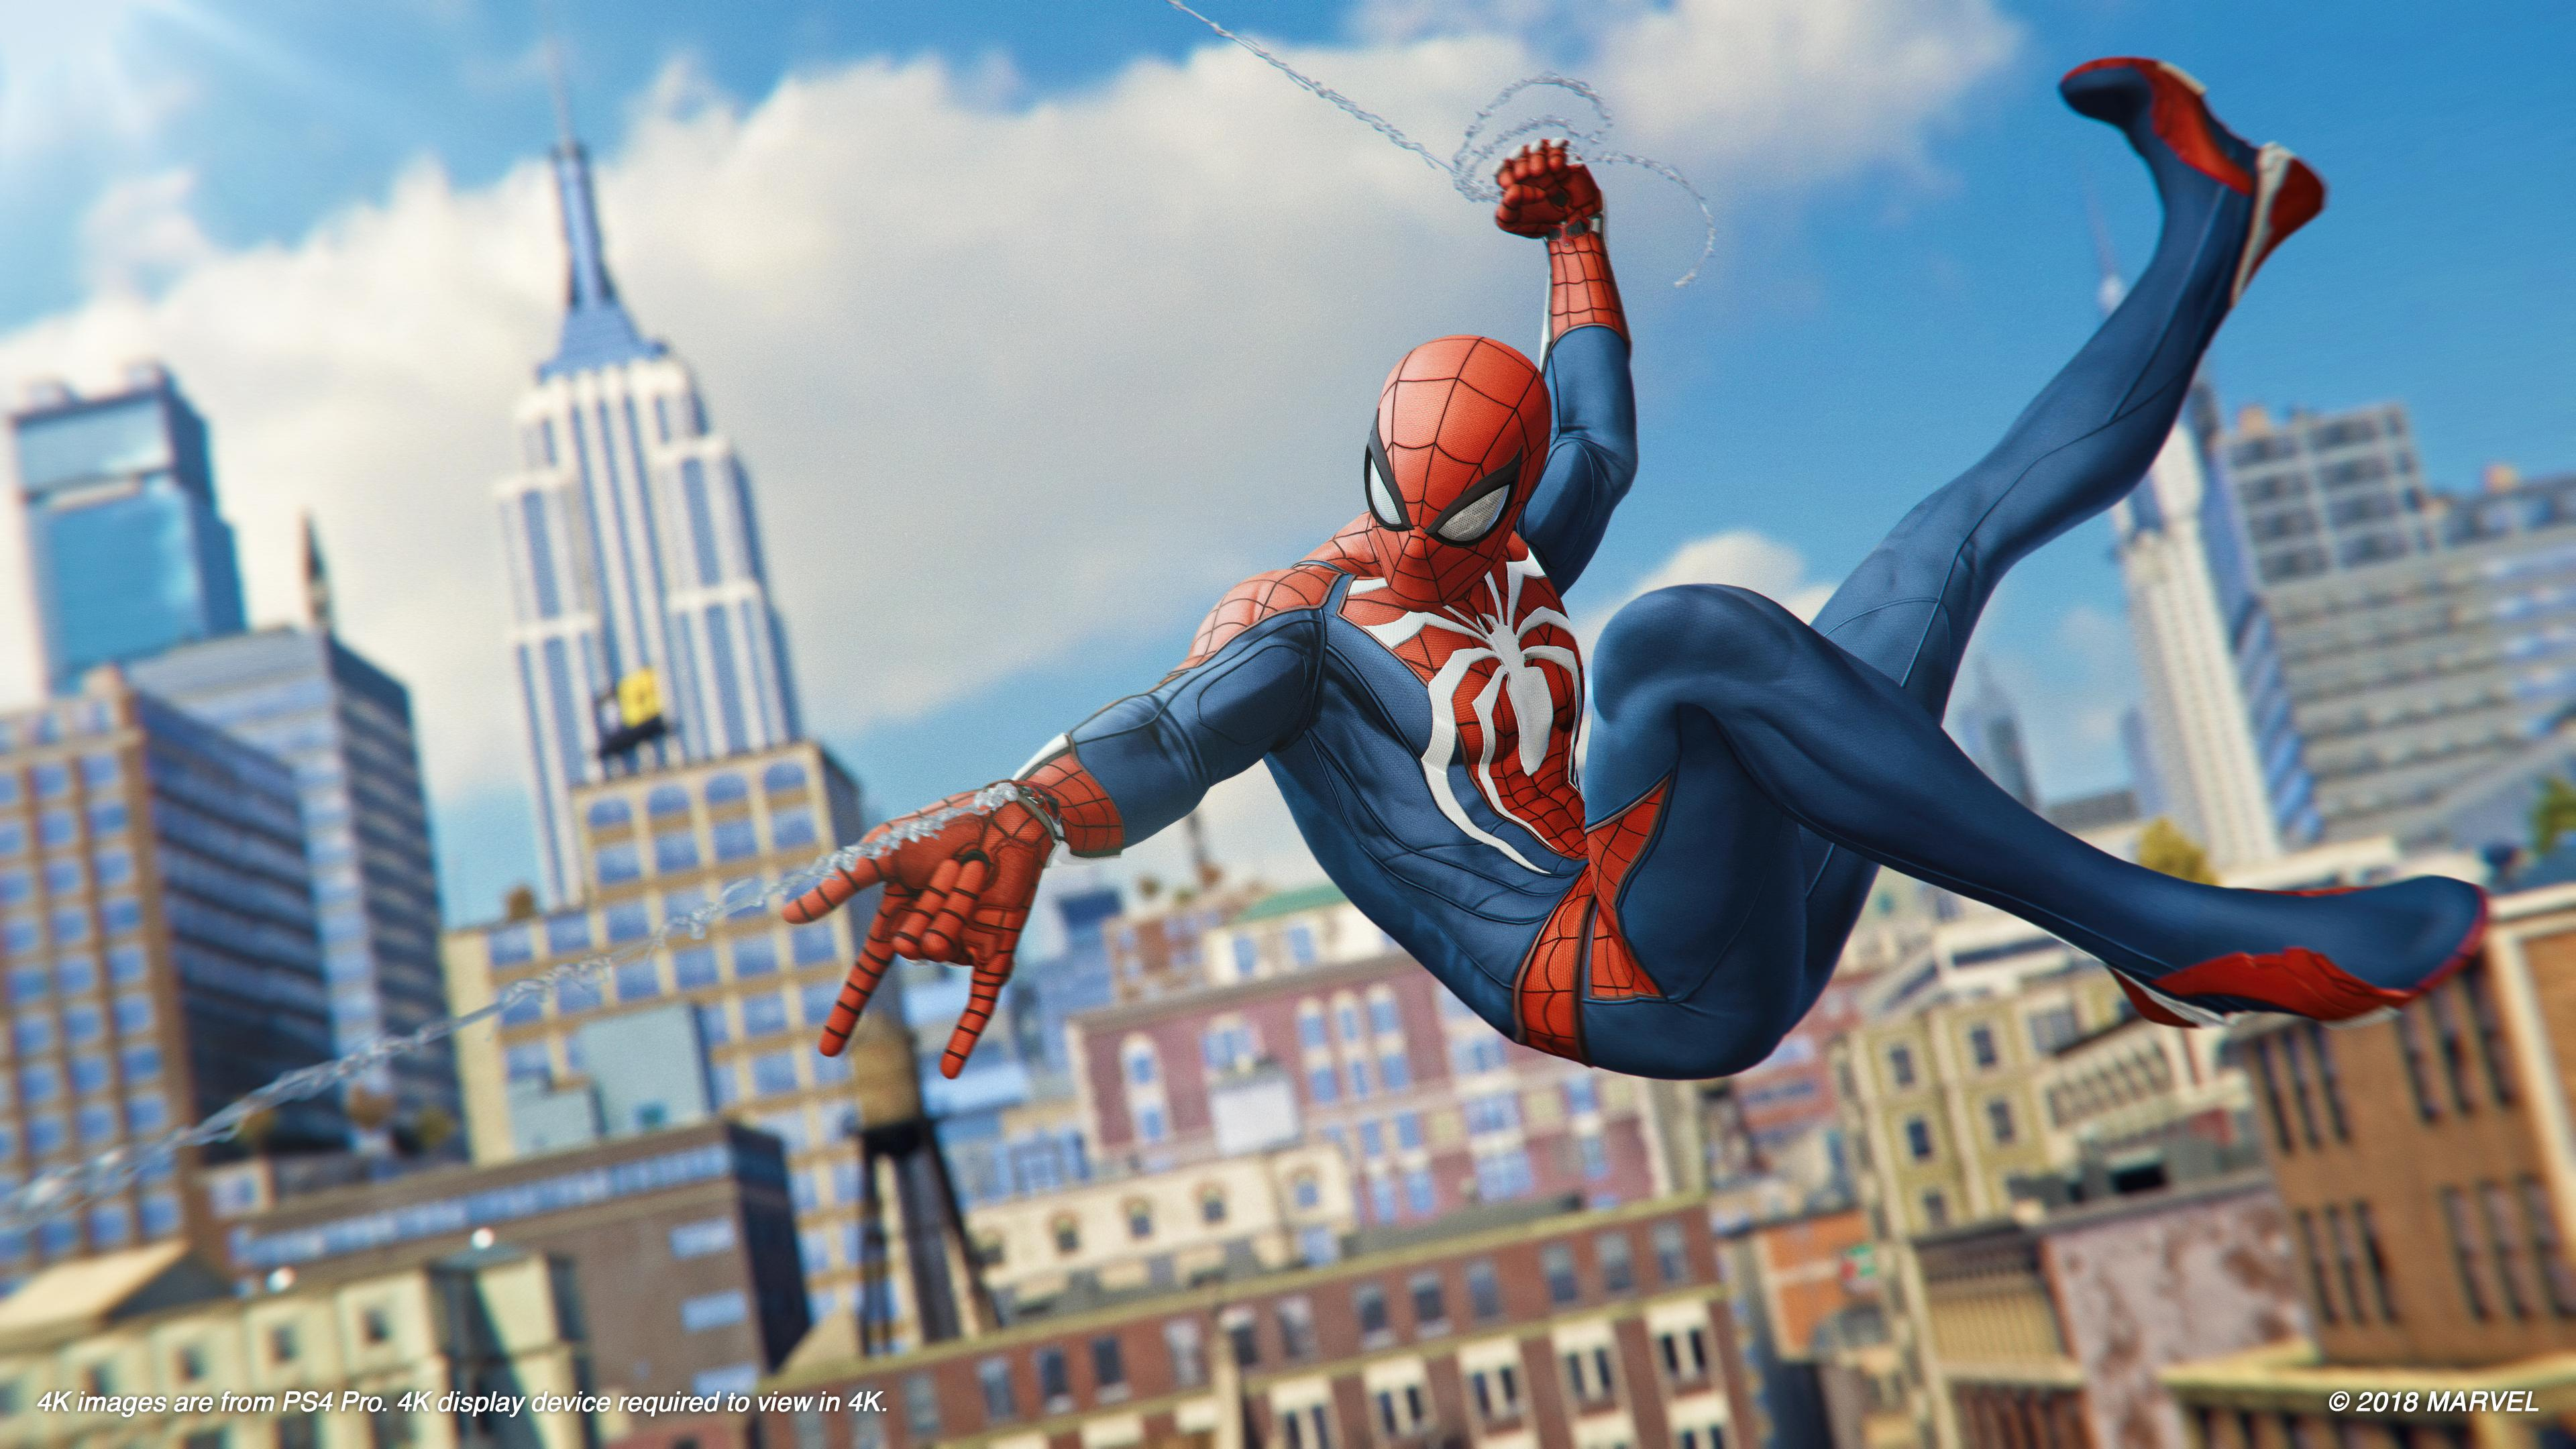 Insomniac have handled the hero with care